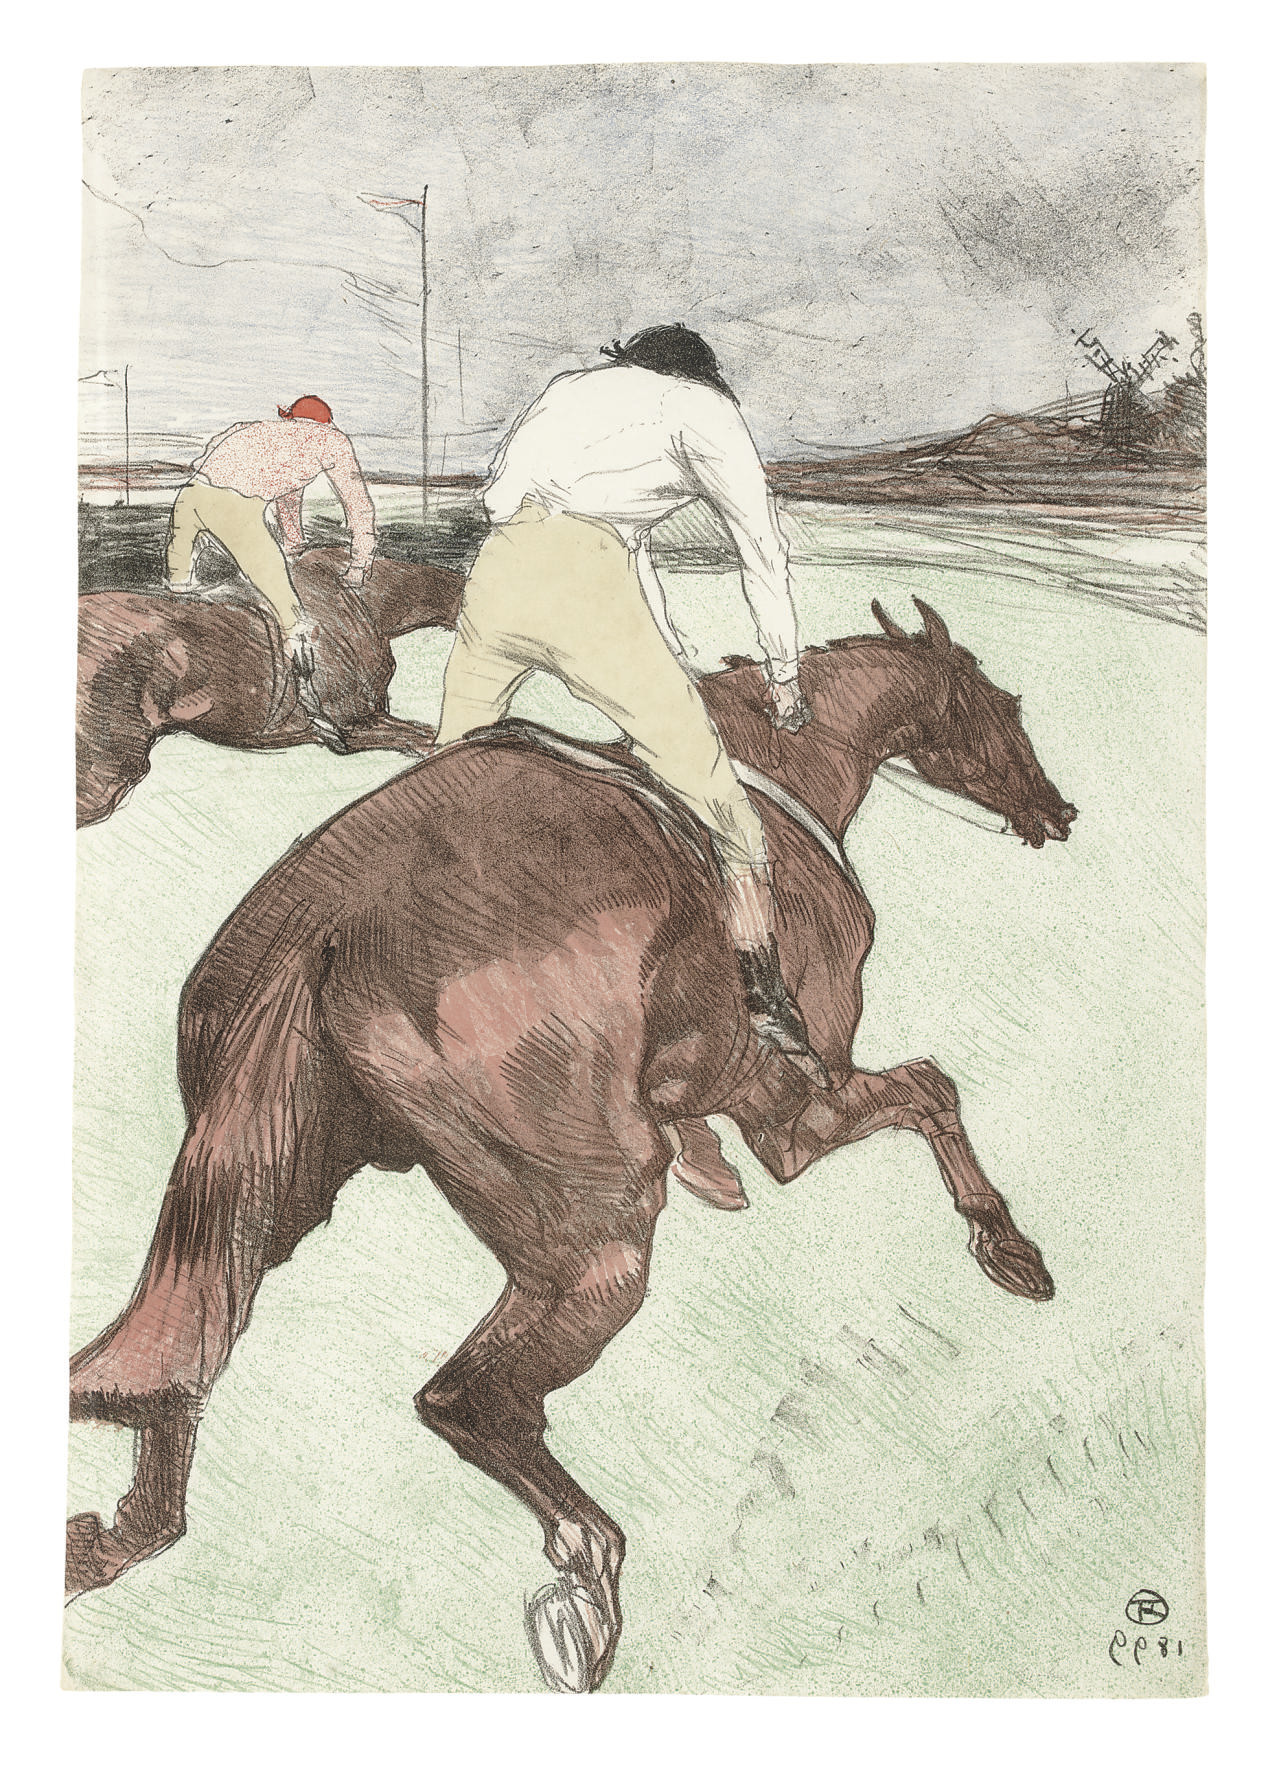 toulouse lautrec essay The paris of toulouse-lautrec features over 100 prints and posters  associate curator in the department of drawings and prints at moma, provides an overview essay.